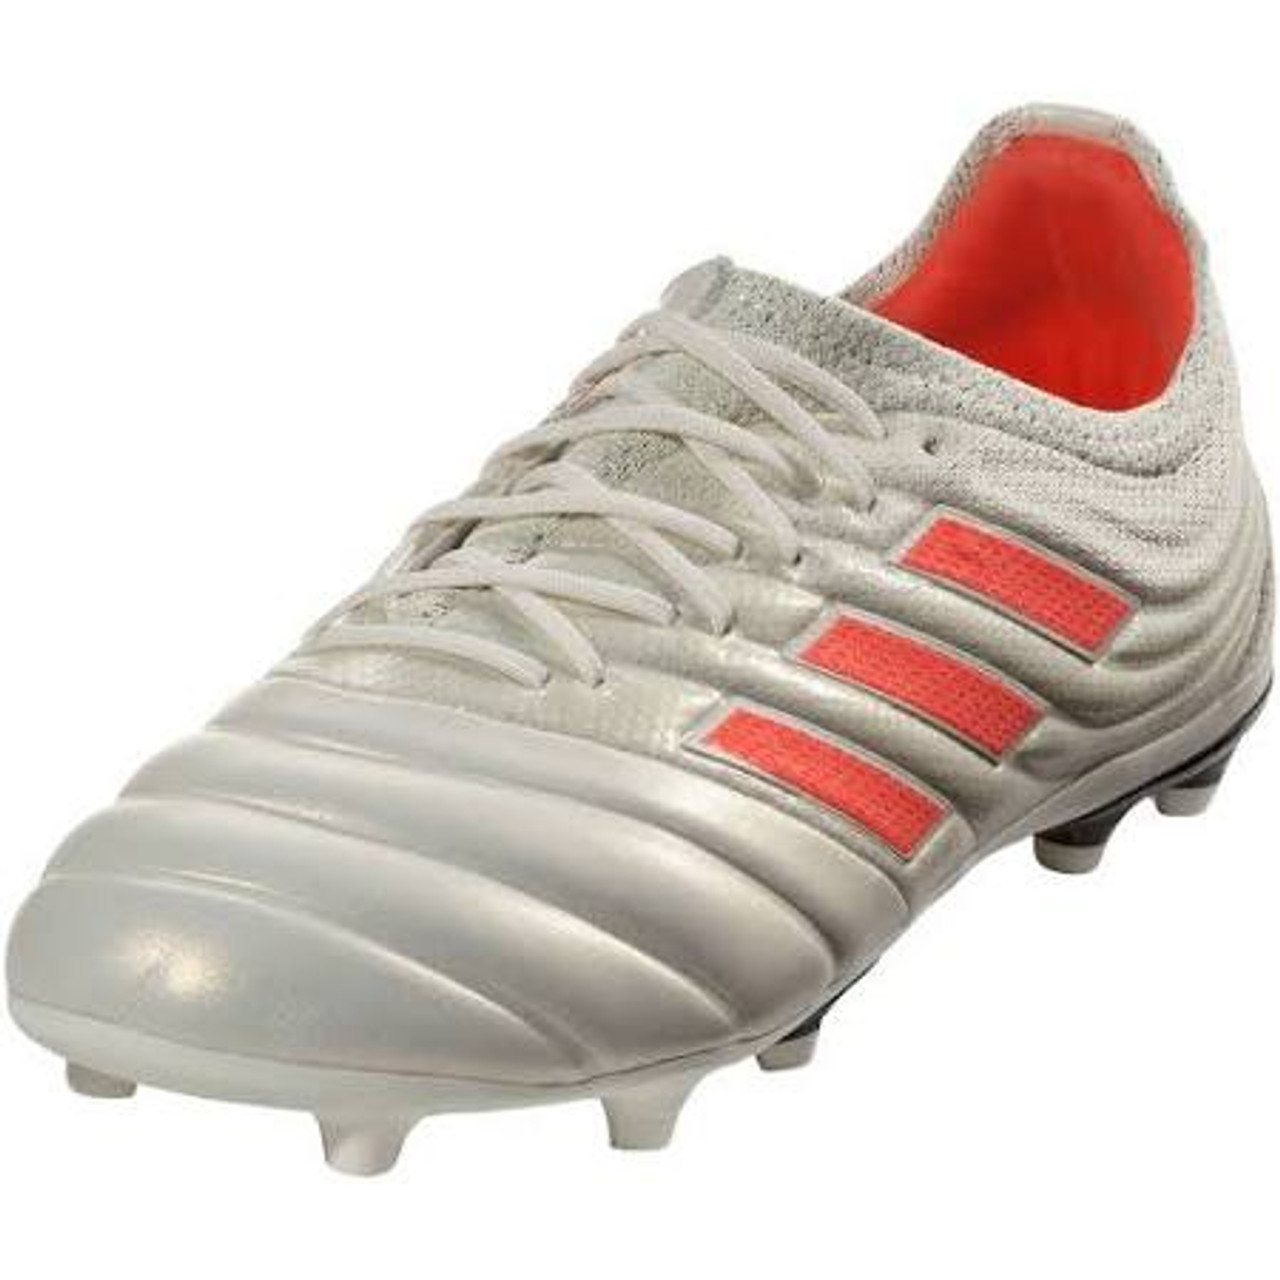 1e44a7305 ADIDAS COPA 19.1 FG Off White Solar Red Core Black - Soccer Plus